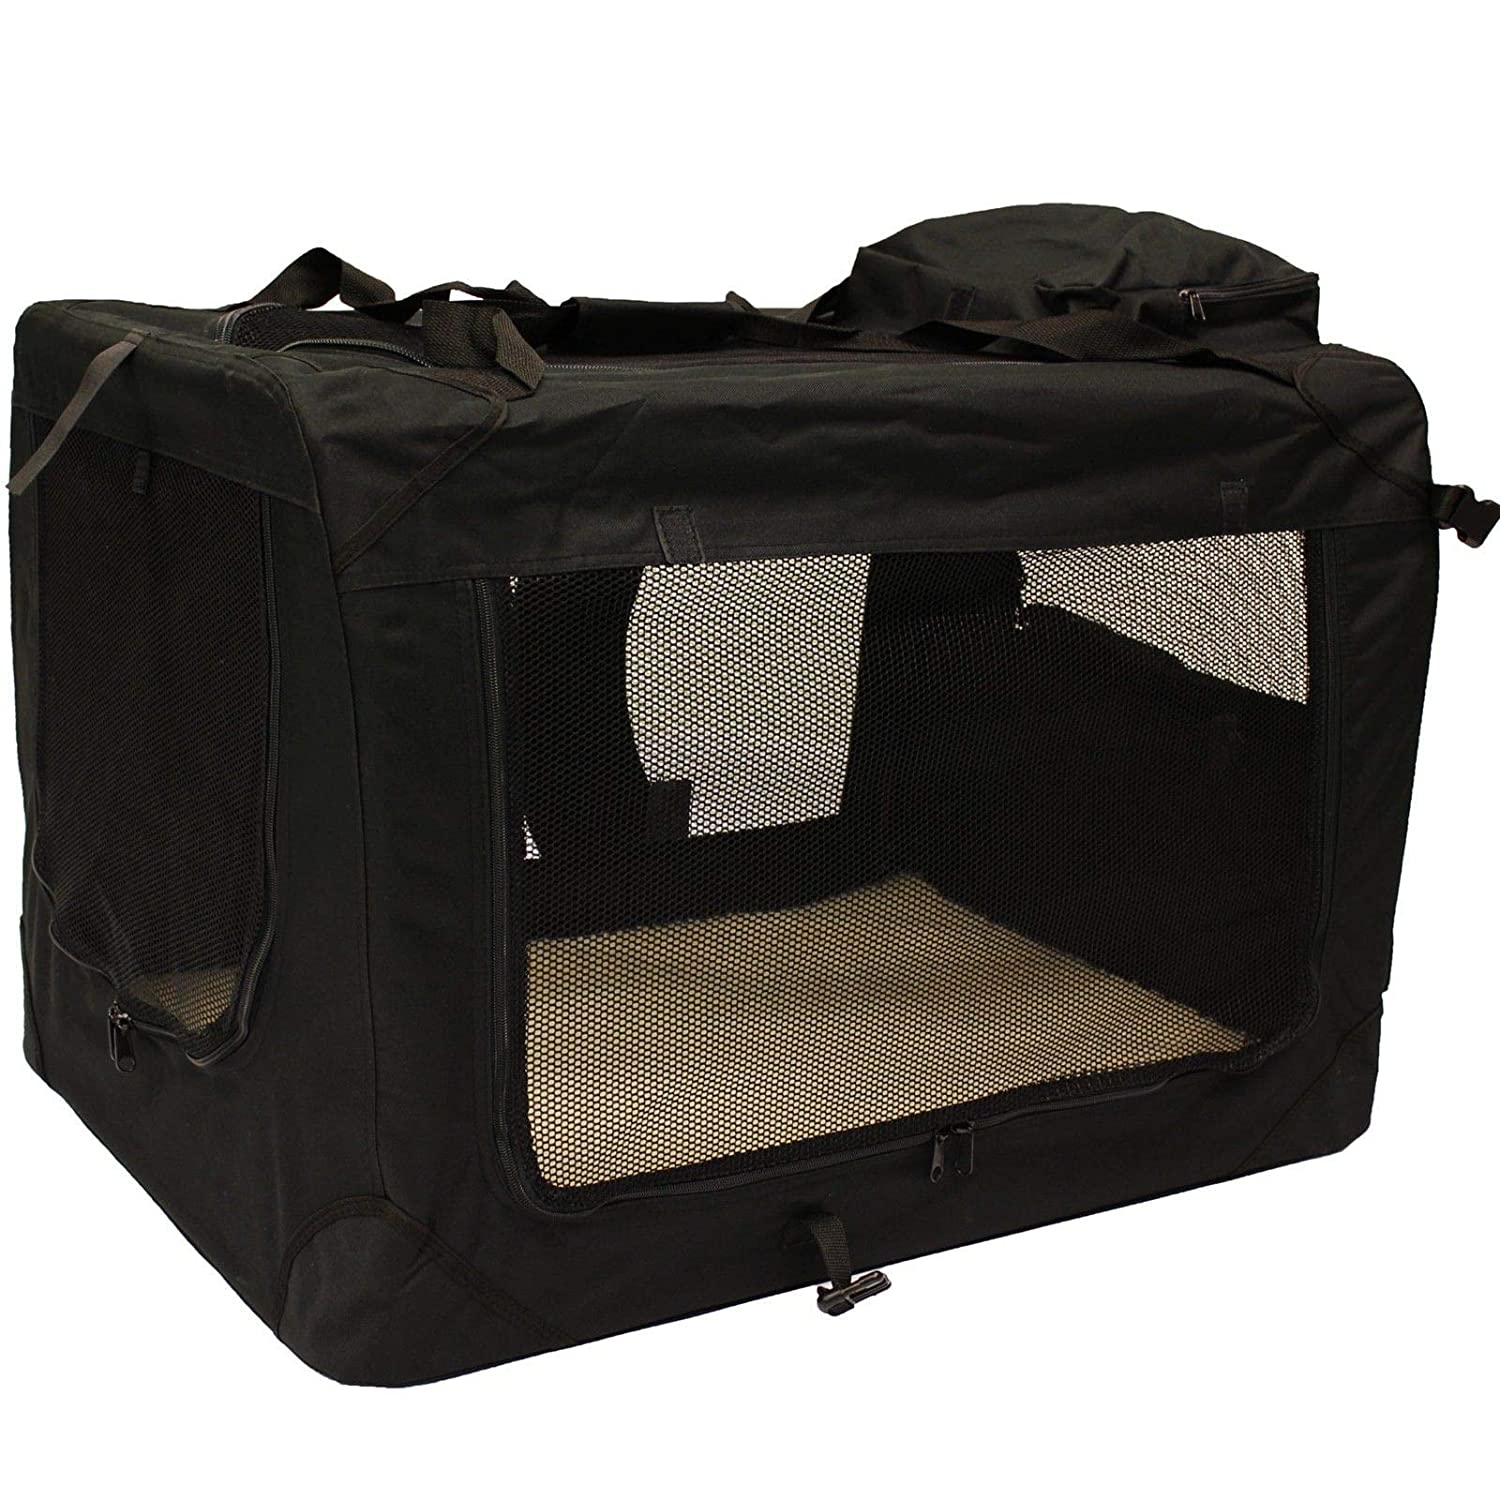 Generic  ic Pet Carrie Carrier Crate bric Pet Car with Fleece with Fle Food Bag Large Mat and Food Bag Lightweight Fabric Pet t and Foo Mat and